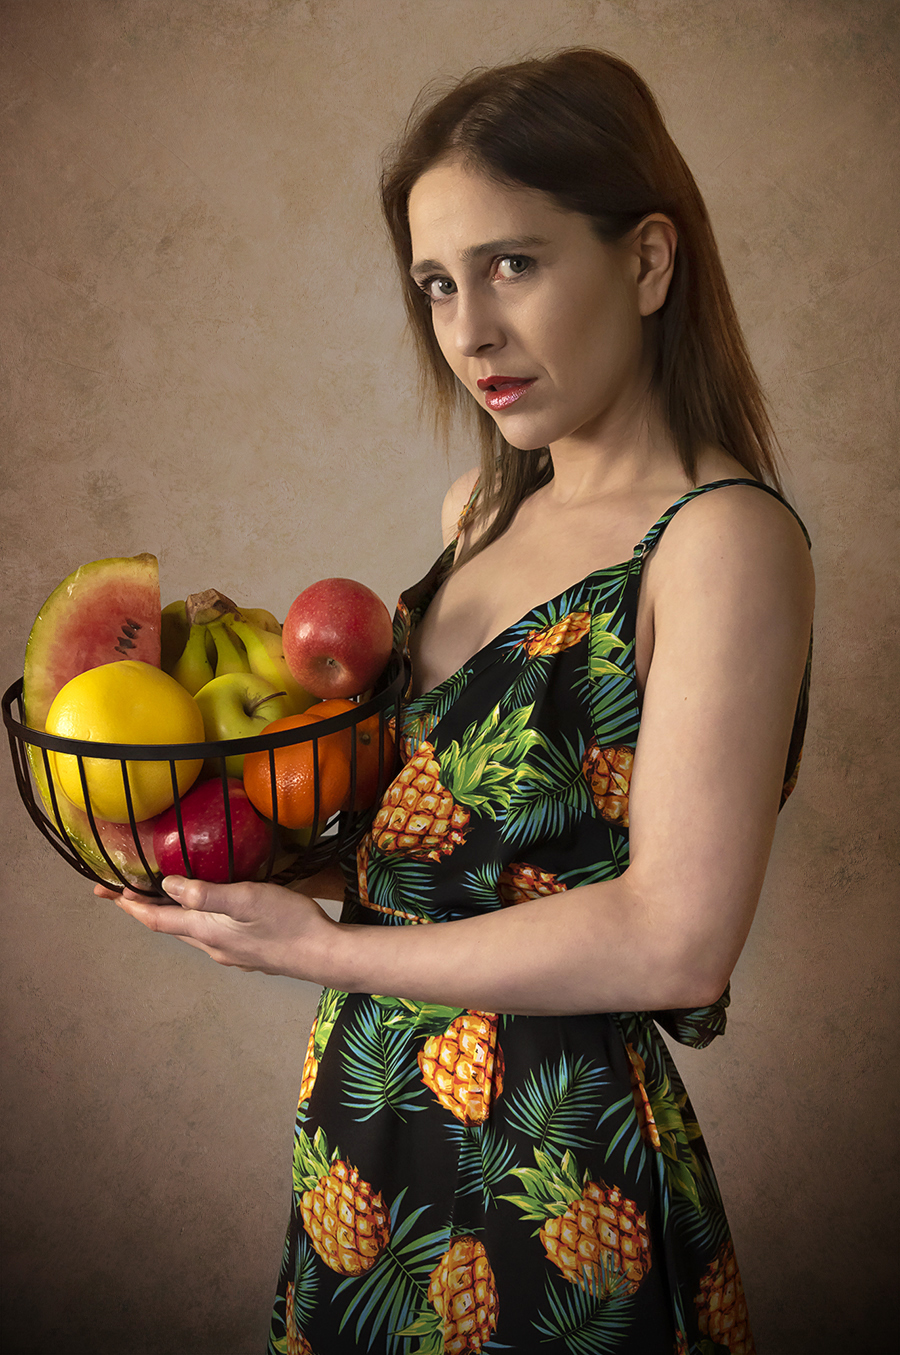 Still Life With Evie / Photography by Dag Nammett, Model Evie Kedavra / Uploaded 24th April 2021 @ 11:03 AM